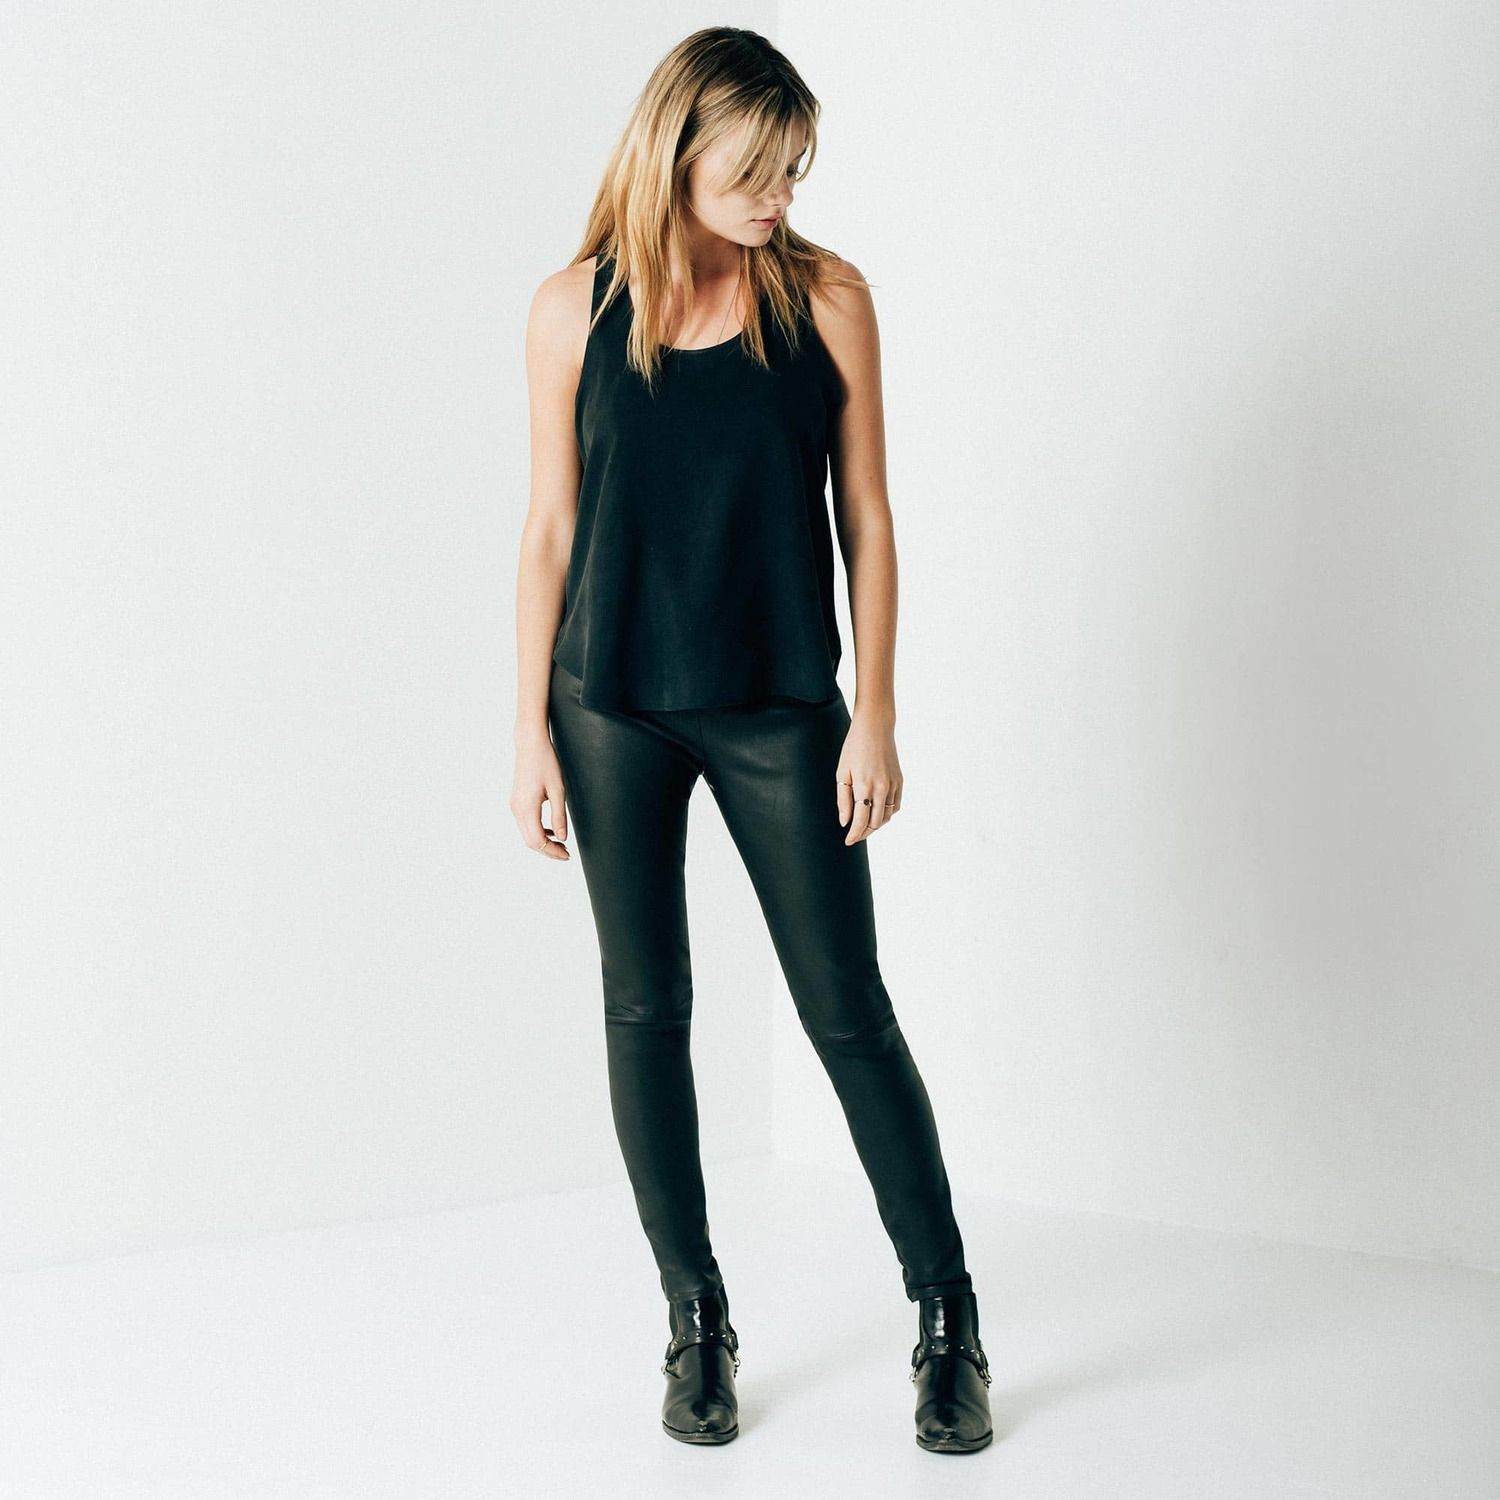 <p>Your newest excuse to defy seasons arrives with our Women's Leather Legging. Designed with metropolitan living in mind, our jet-black supple lambskin leather is specially developed with stretch to achieve a comfortable and sophisticated look. With a concealed side zip closure at the waist, our newest legging is a carefully controlled study in well-crafted contour. Our black stretch leather adds flexibility to a mid-rise, ankle length fit, easily taking you from day tonight.&l...